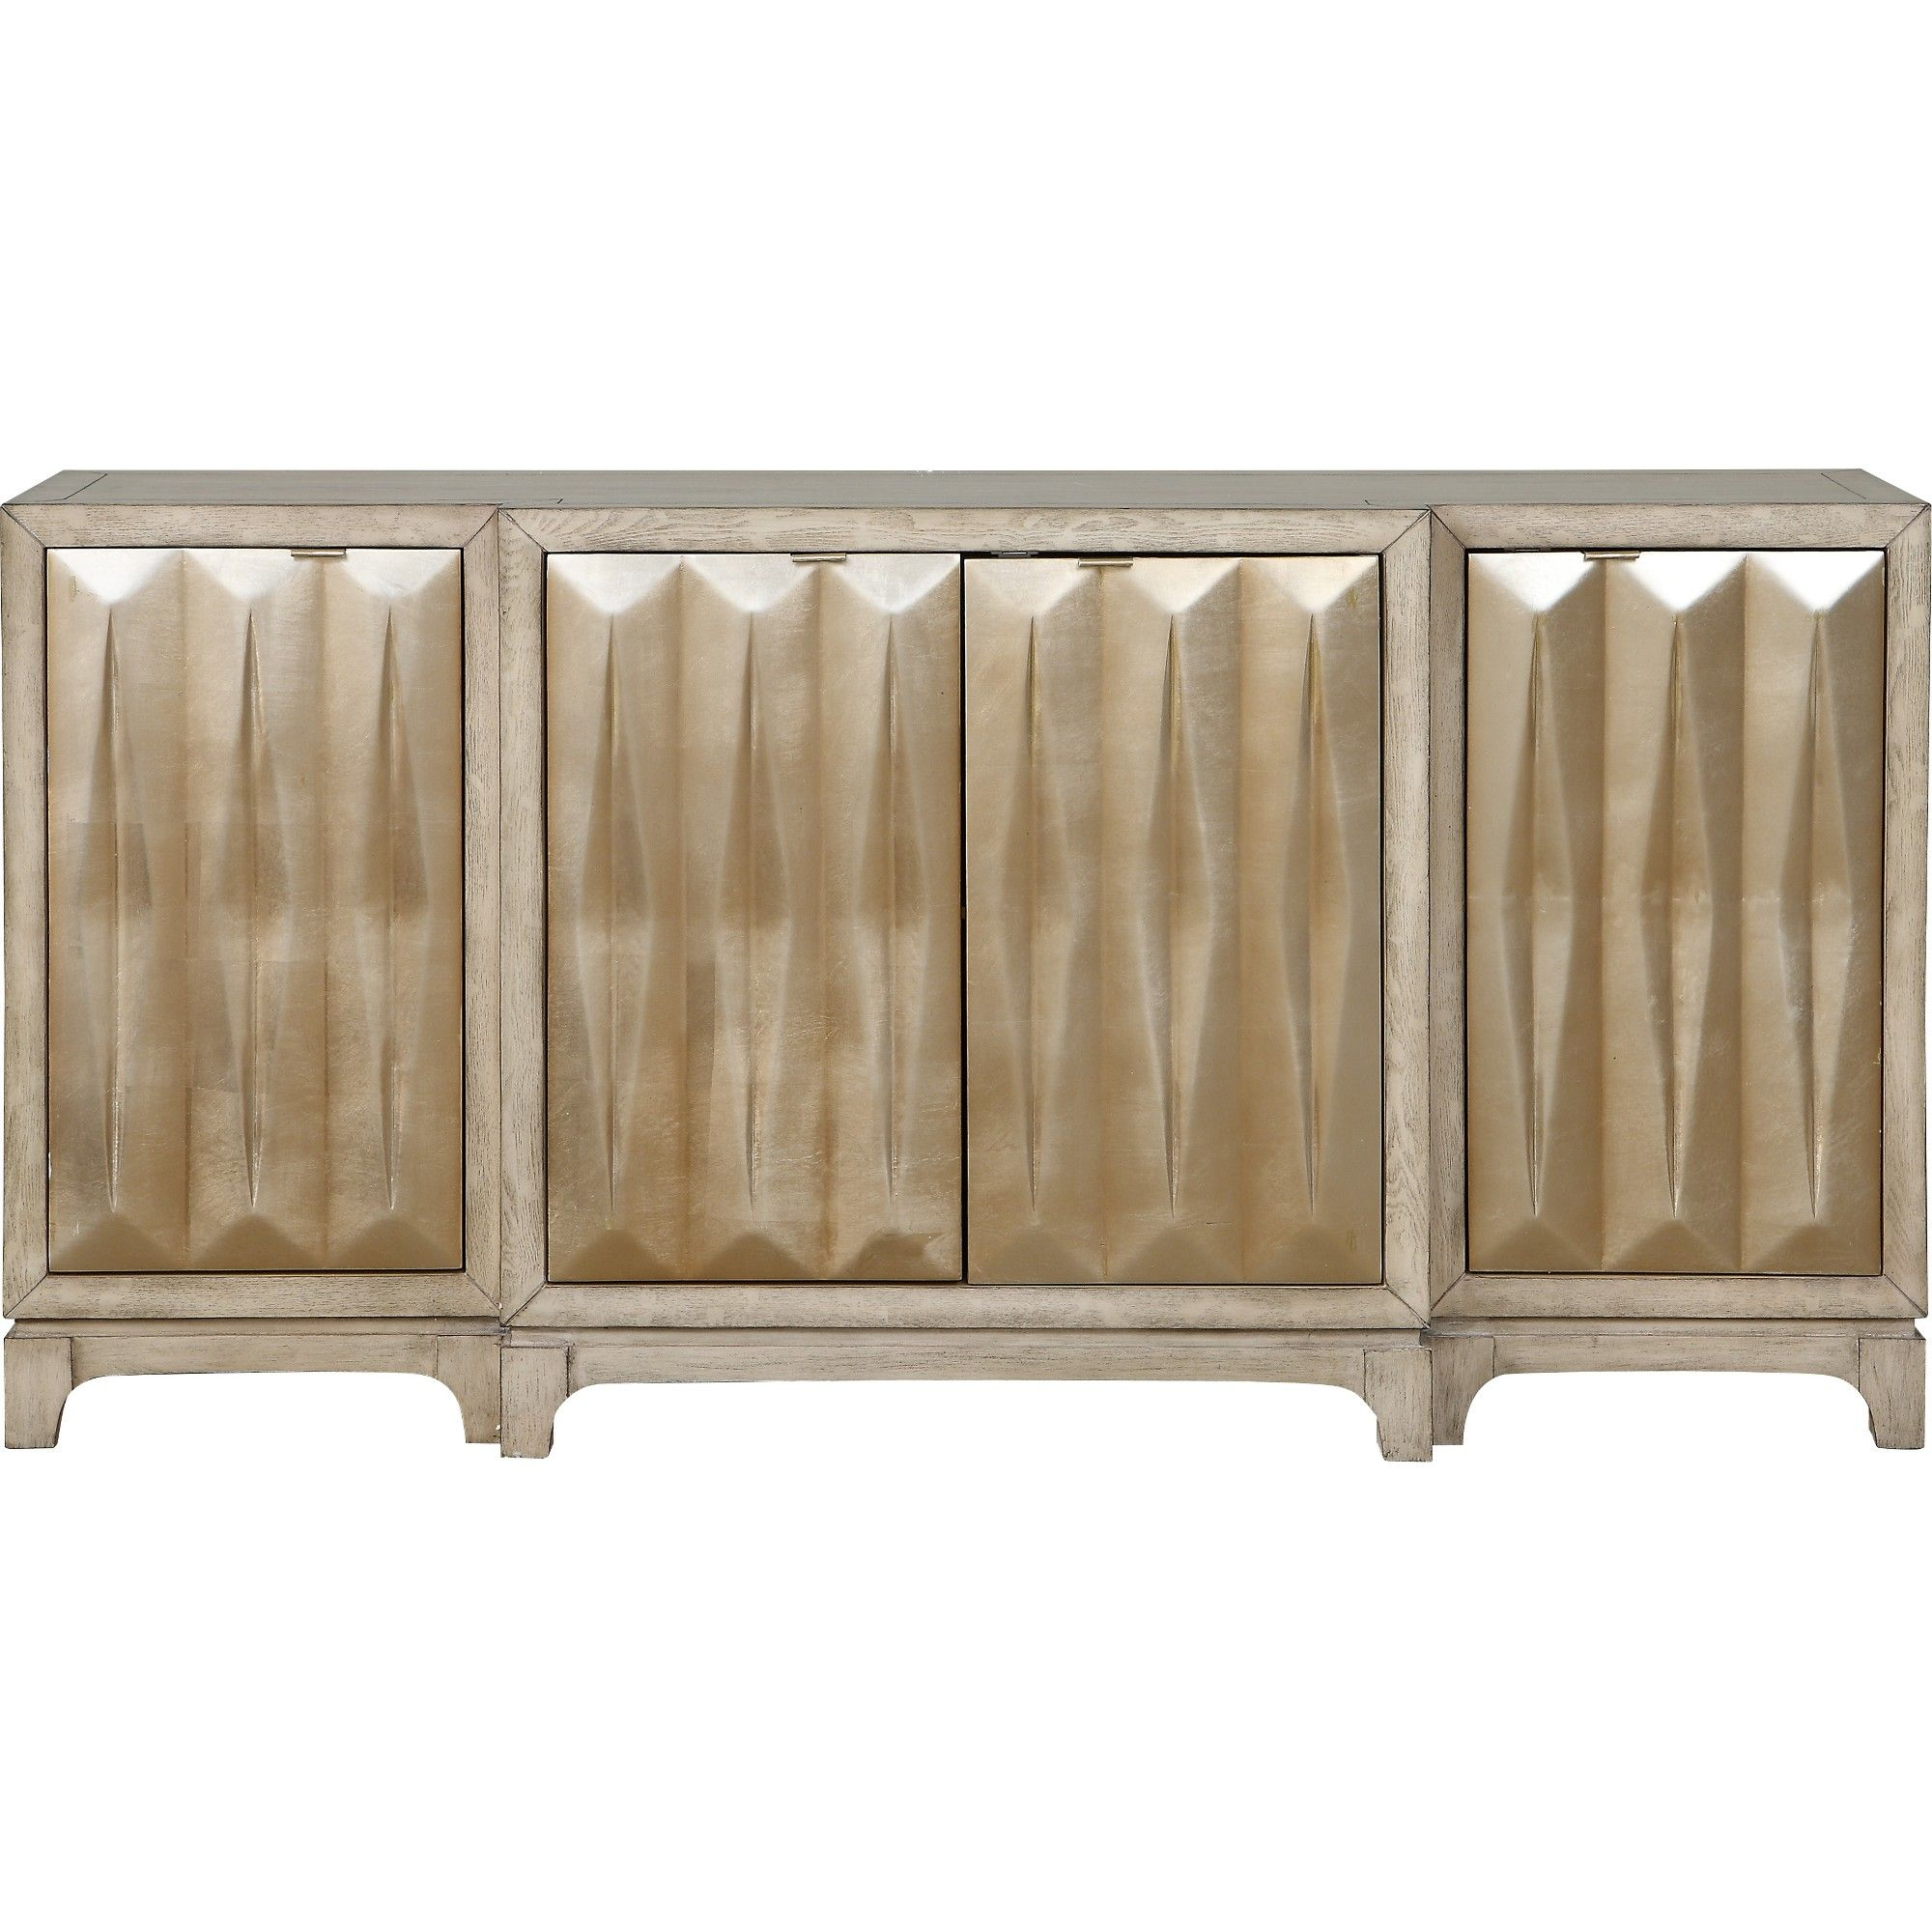 Treasure Trove Accents Luxe 4 Door Media Credenza White/gold Intended For Most Popular Errol Media Credenzas (#20 of 20)